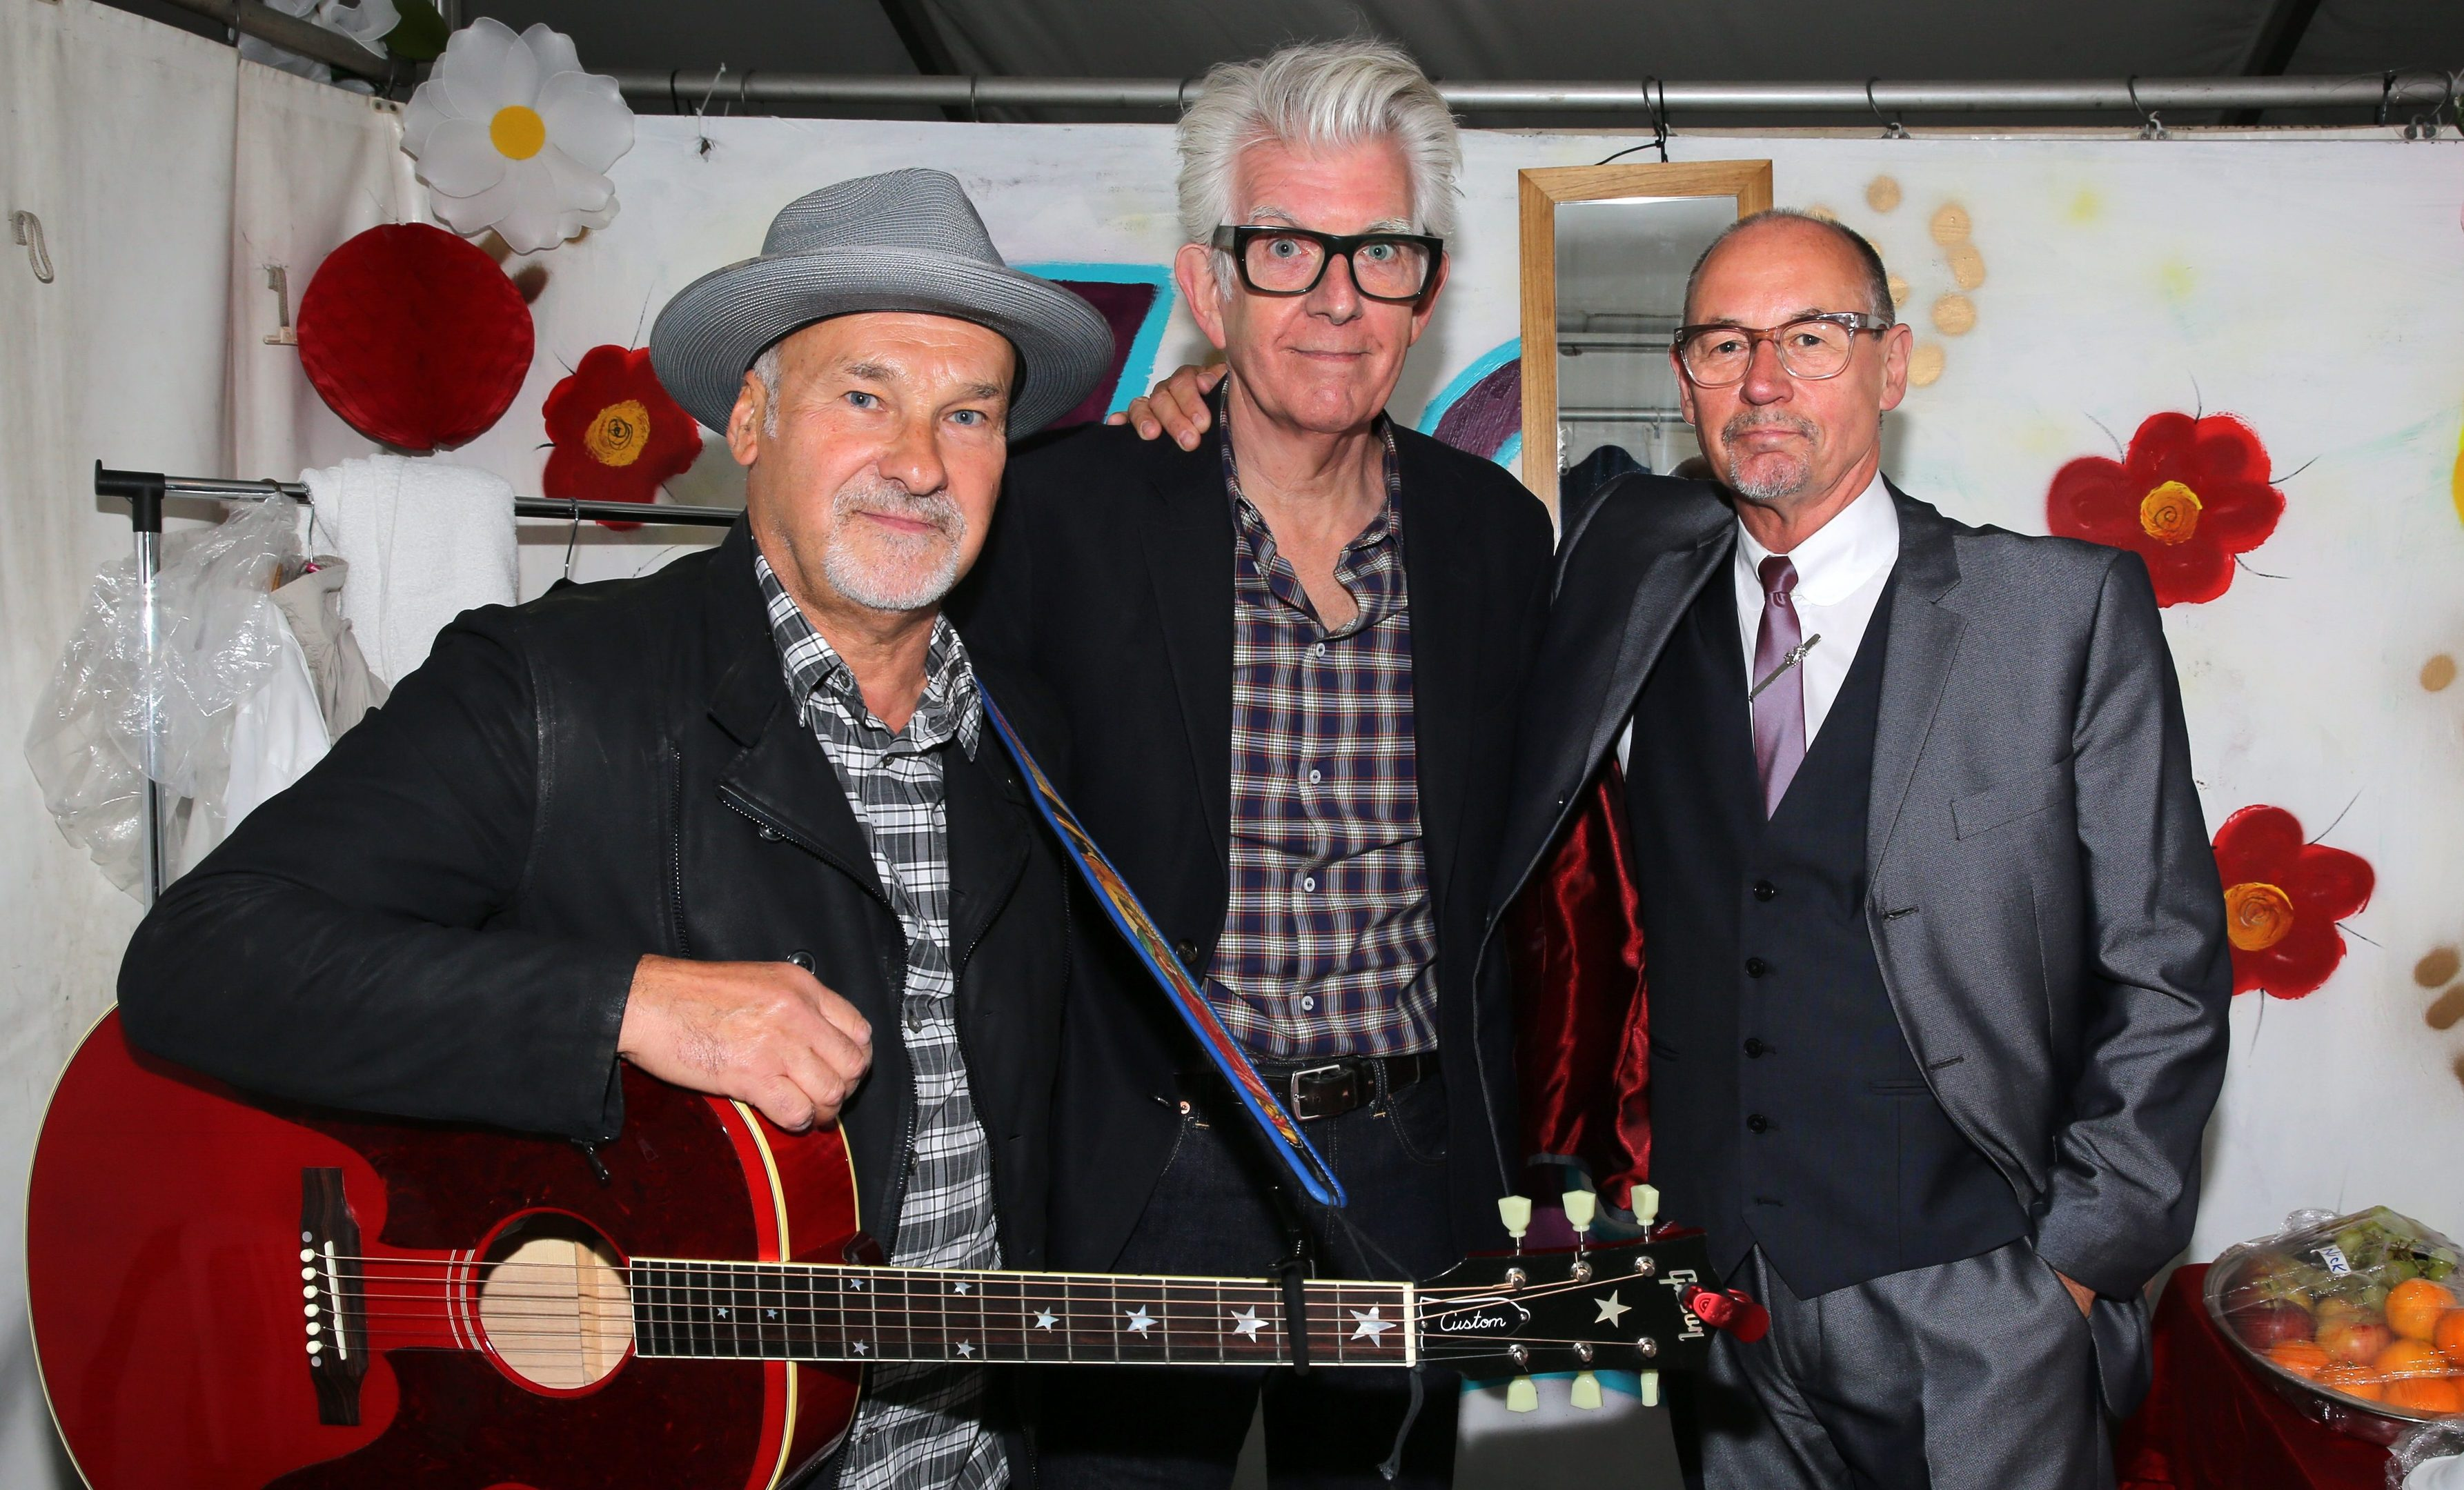 Perth Southern Fried Festival 2016 featured Nick Lowe, Paul Carrack and Andy Fairweather Low.